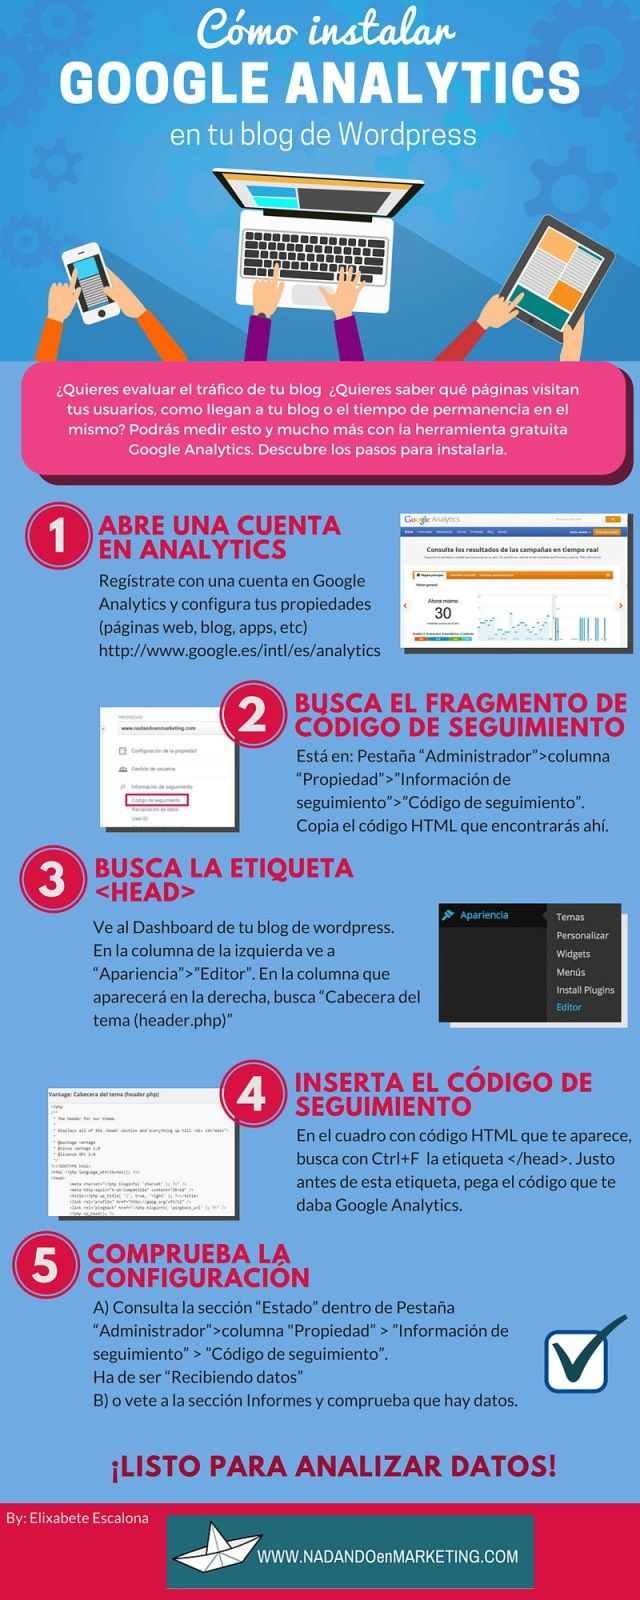 Cómo instalar Google Analytics en tu blog WordPress